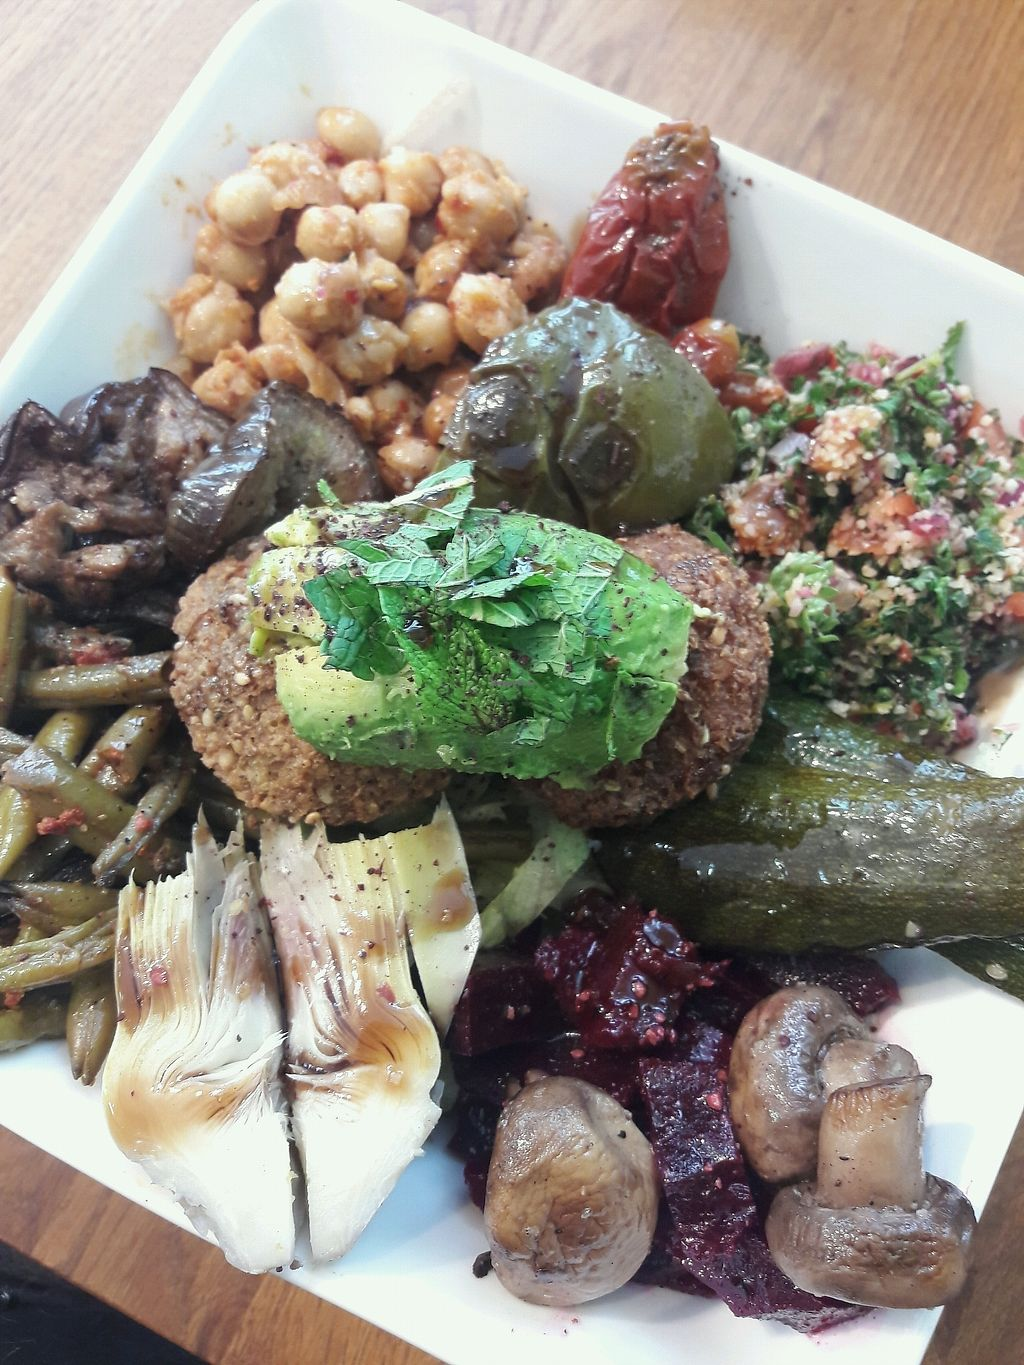 "Photo of Levant - Kallio  by <a href=""/members/profile/reissausta%20ja%20ruokaa"">reissausta ja ruokaa</a> <br/>Salad with falafel and avocado <br/> April 11, 2018  - <a href='/contact/abuse/image/117177/383995'>Report</a>"